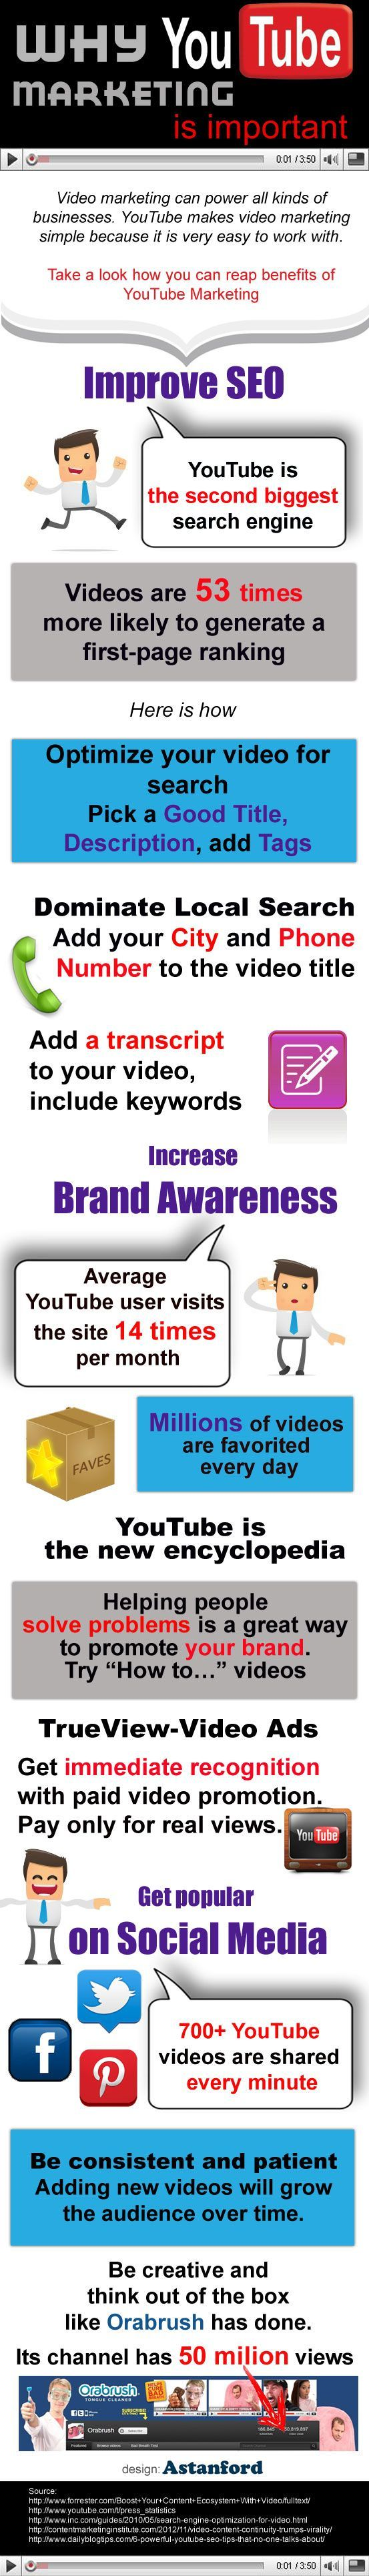 Why YouTube Marketing is Important: Infographic